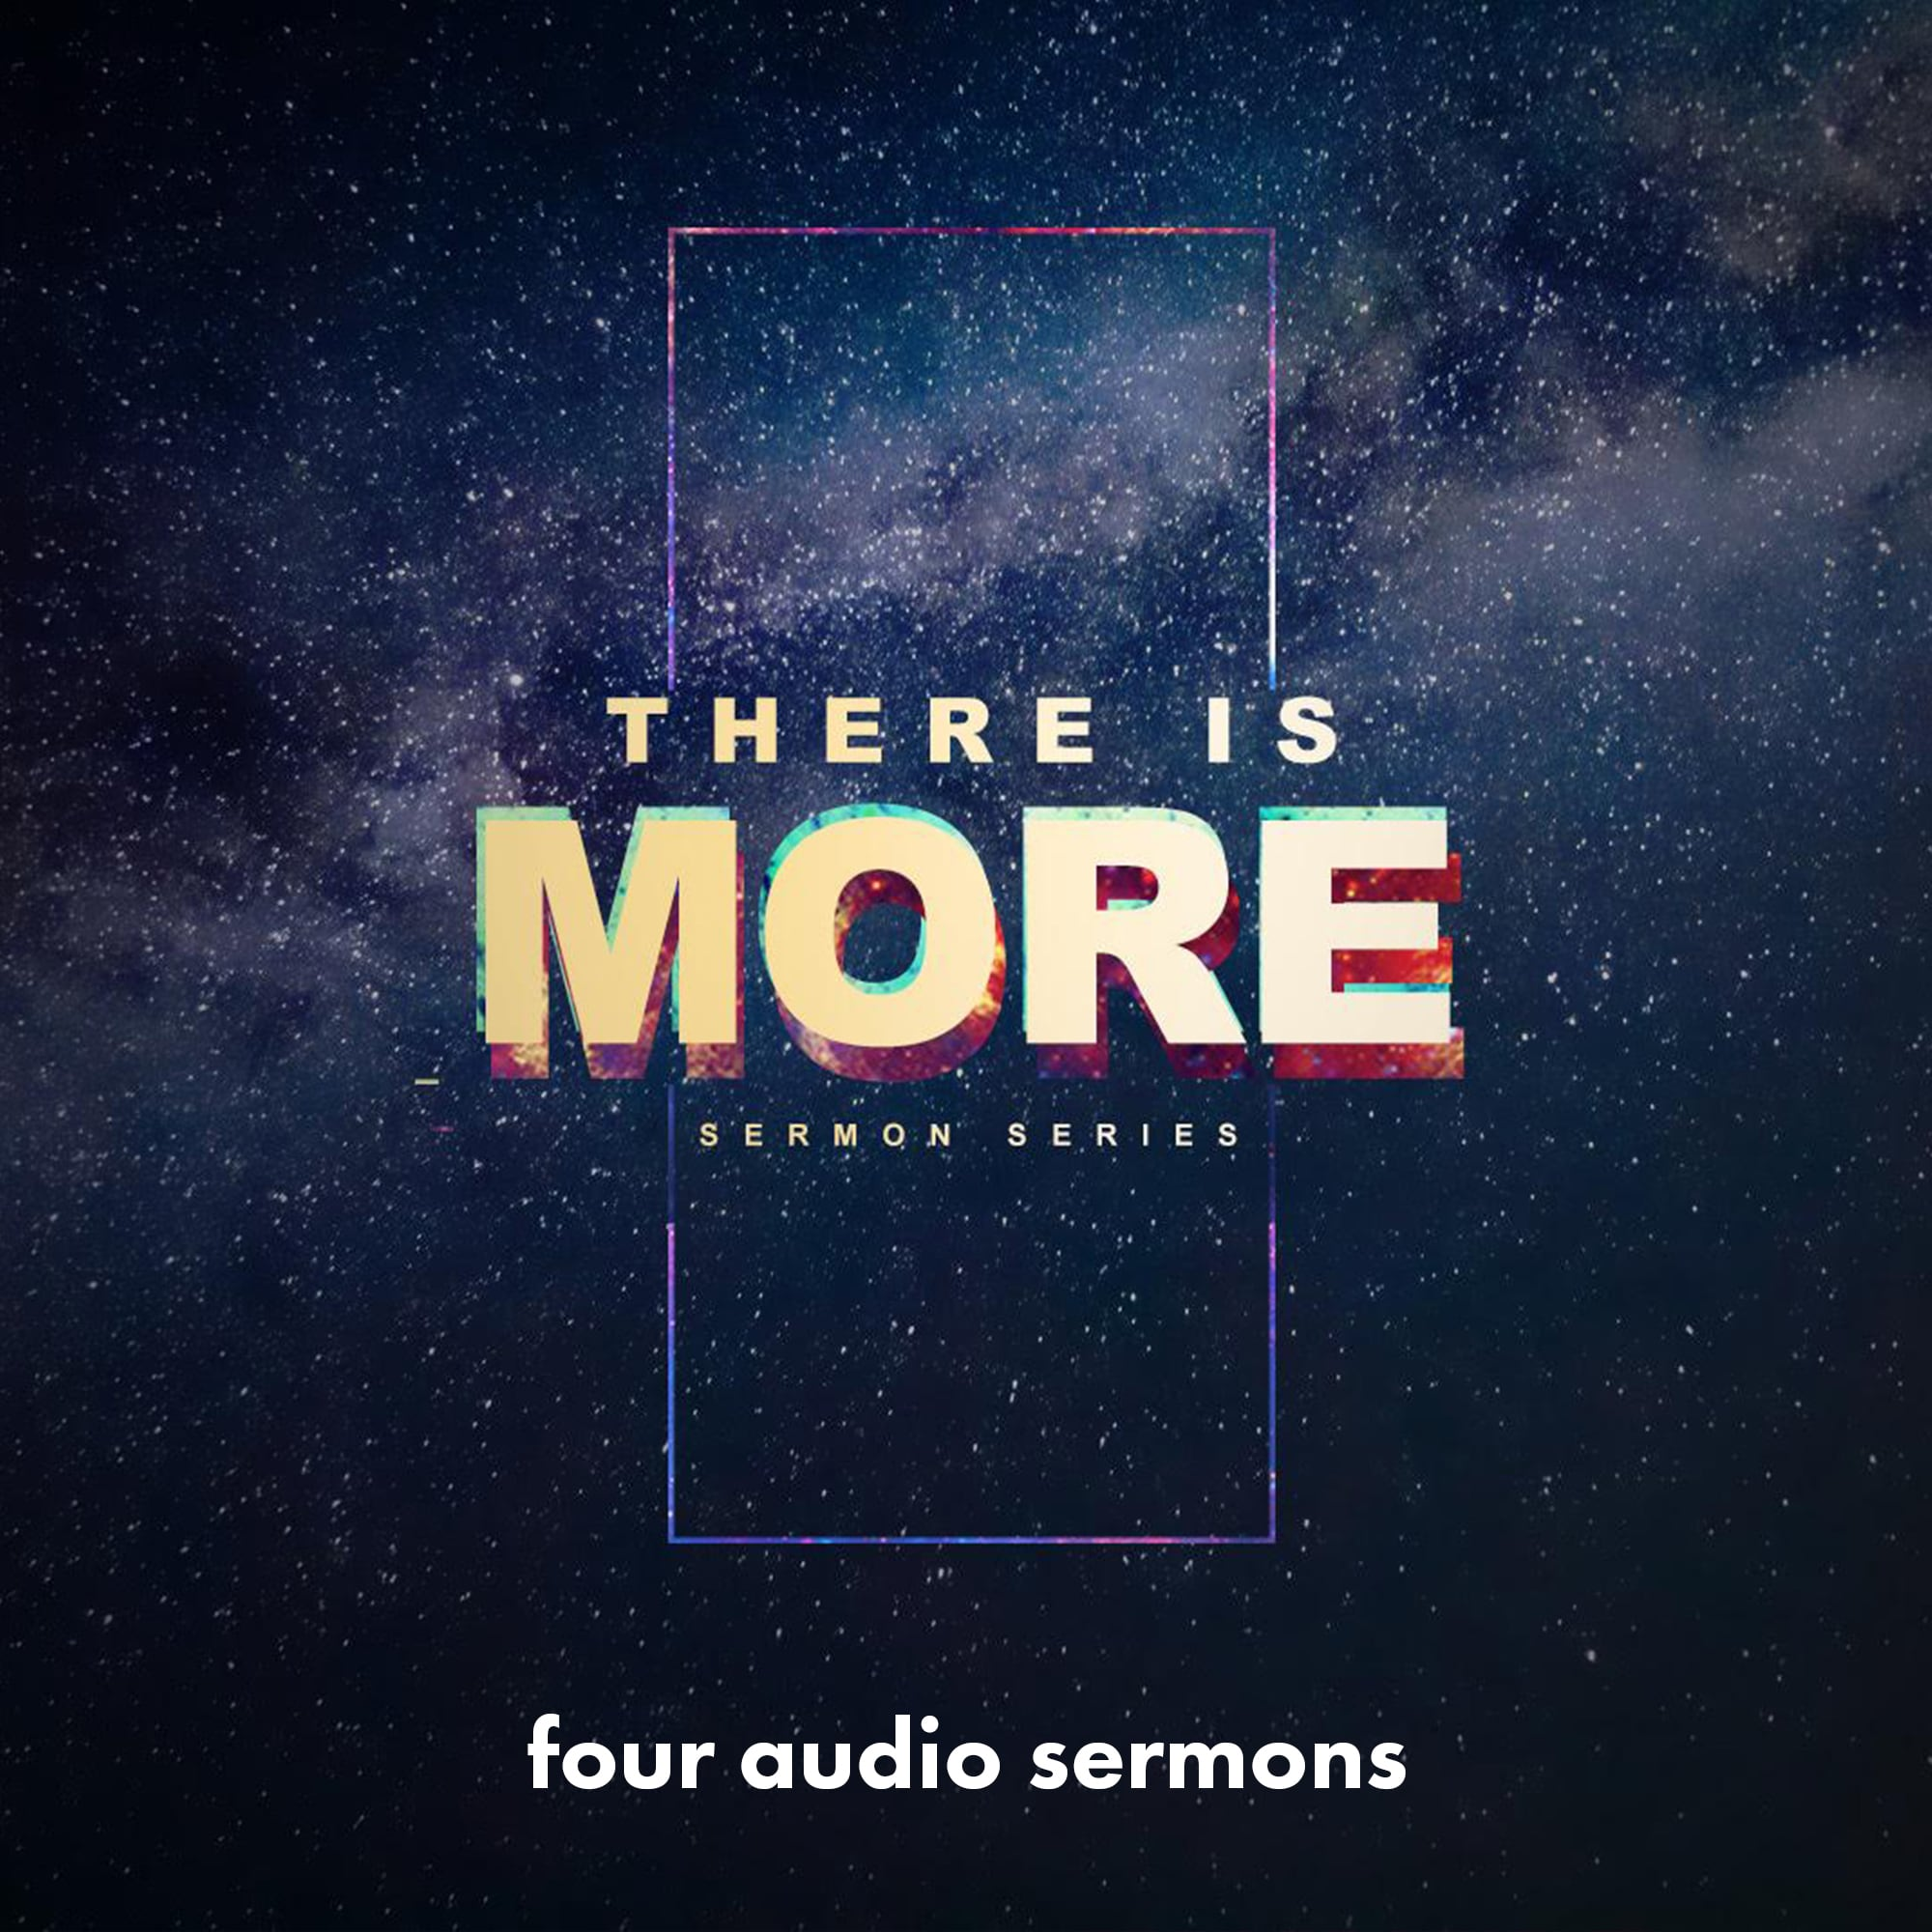 There is More (Audio Series)